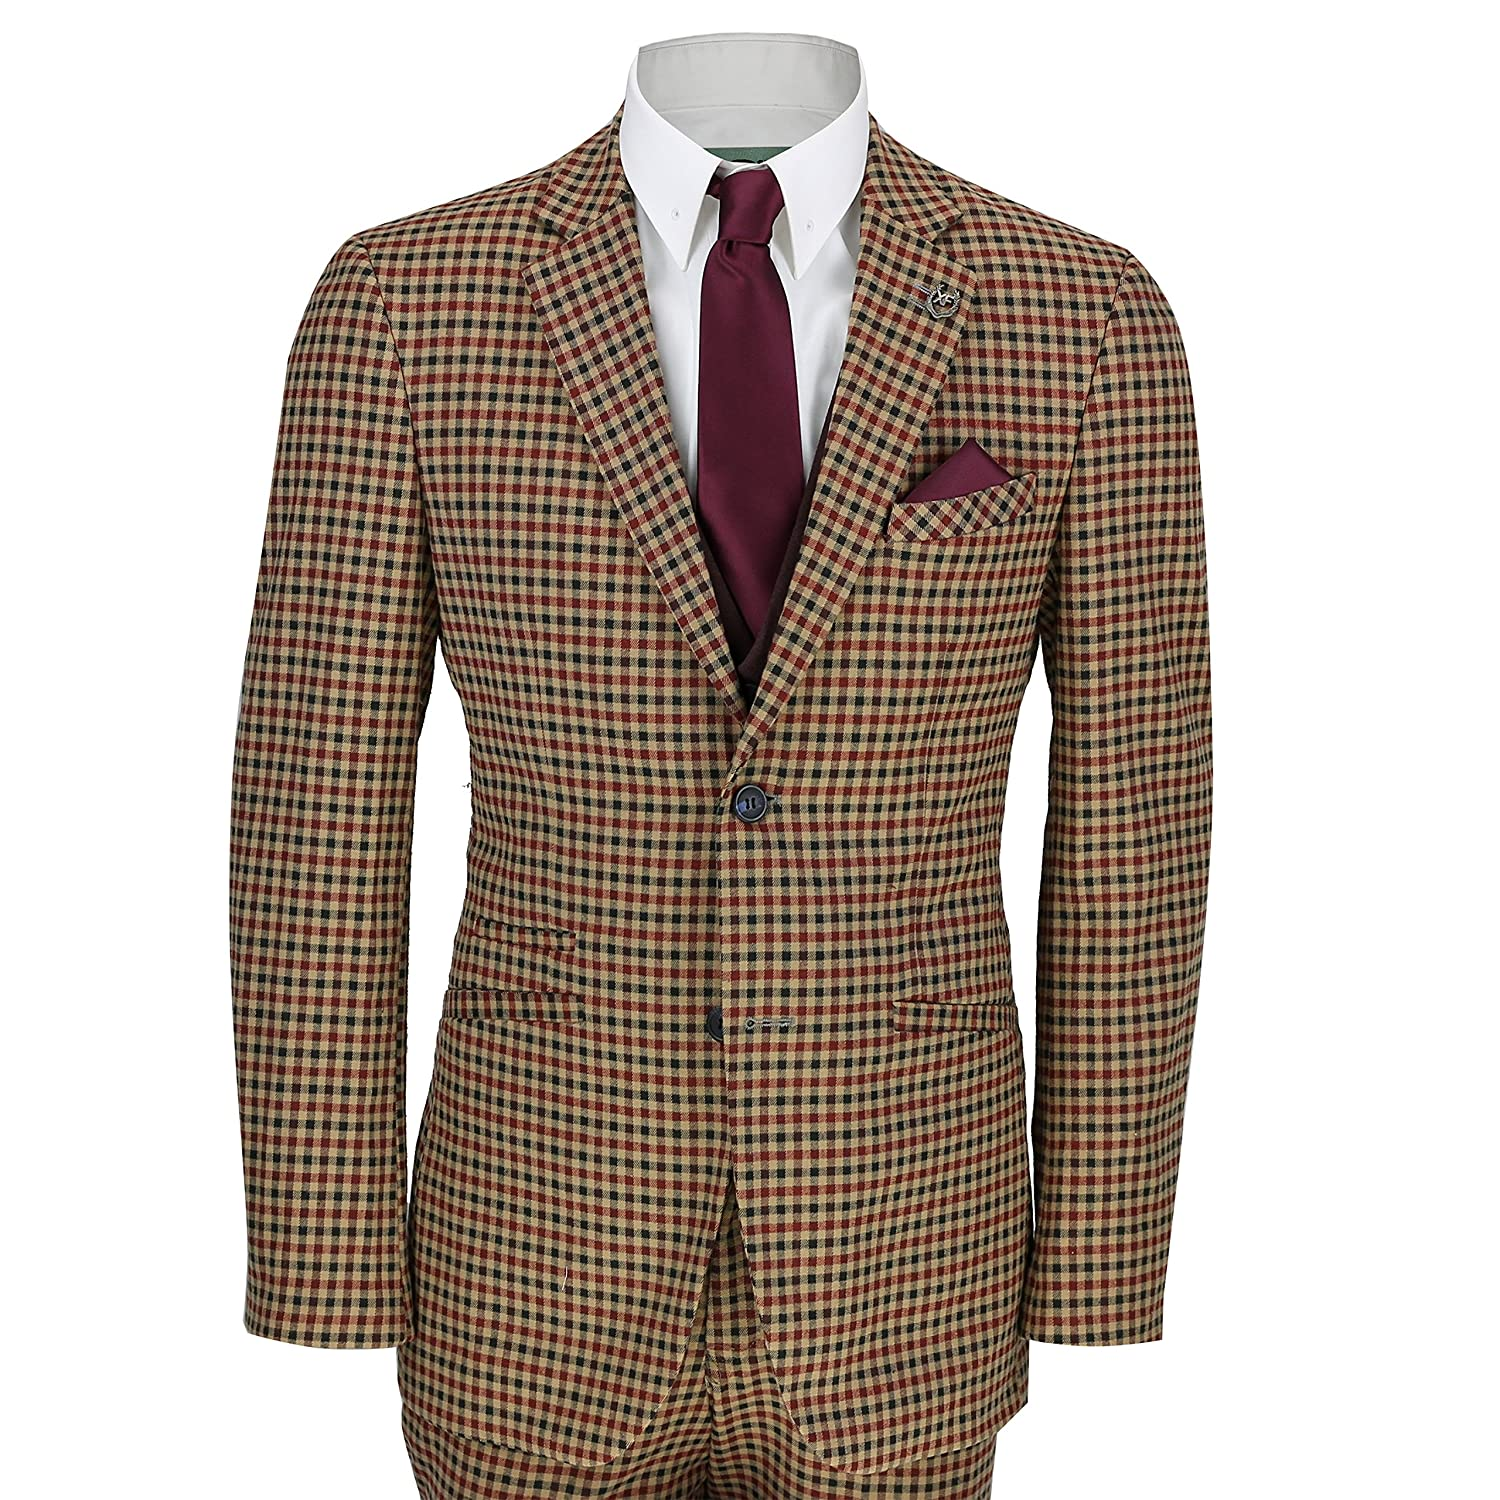 1920s Men's Fashion UK | Peaky Blinders Clothing Xposed Mens Vintage 3 Piece Plaid Tartan Check Slim Tailored Fit Suit Jacket Waistcoat Trouser £104.99 AT vintagedancer.com